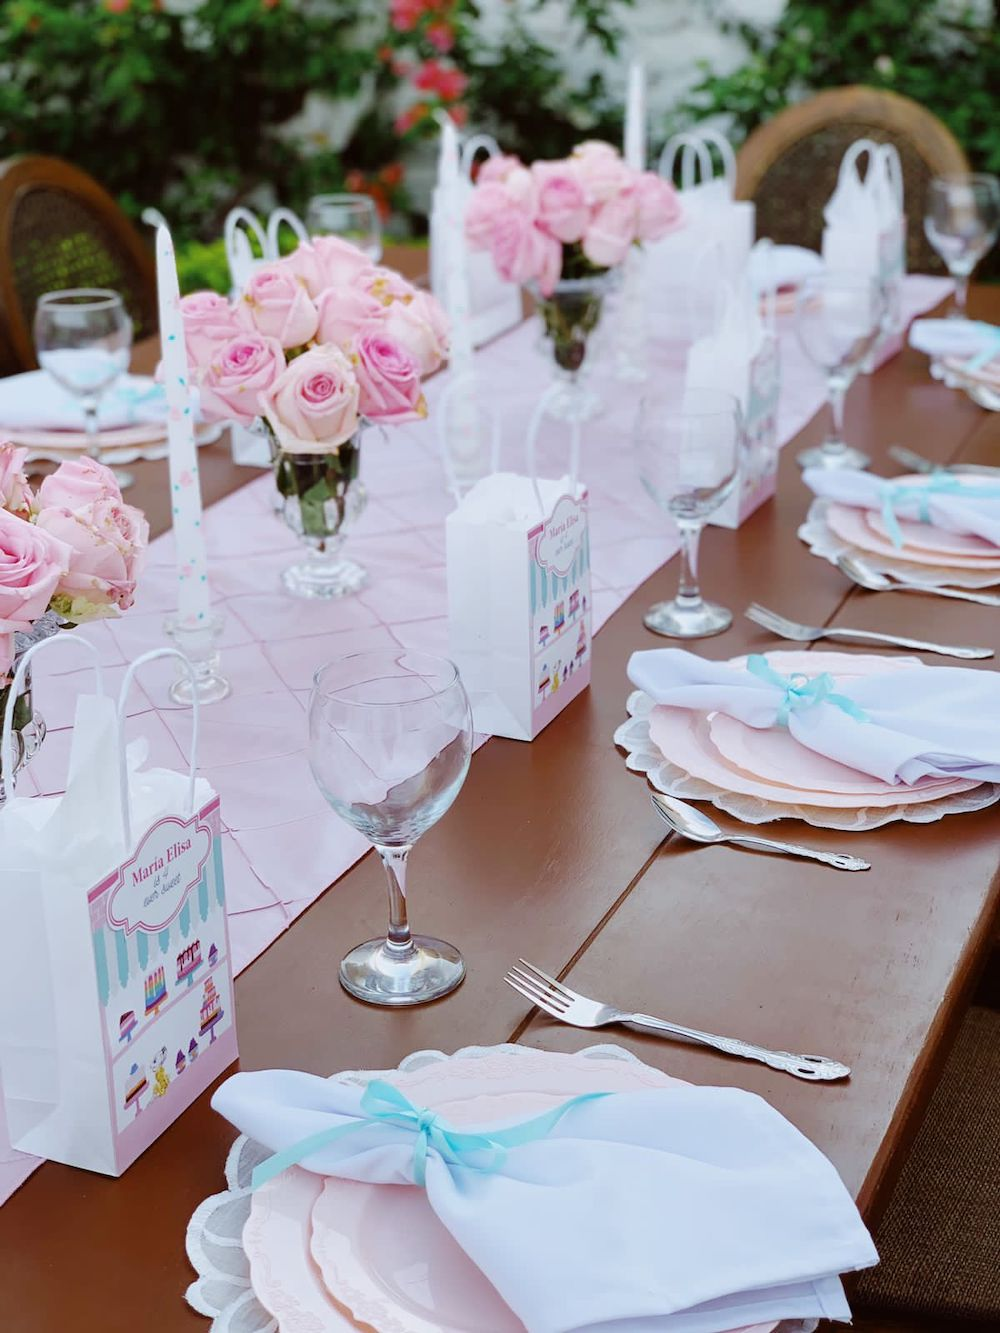 Charlotte sy Dimby dress and Claris the mouse in Paris children's party inspiration tablescape